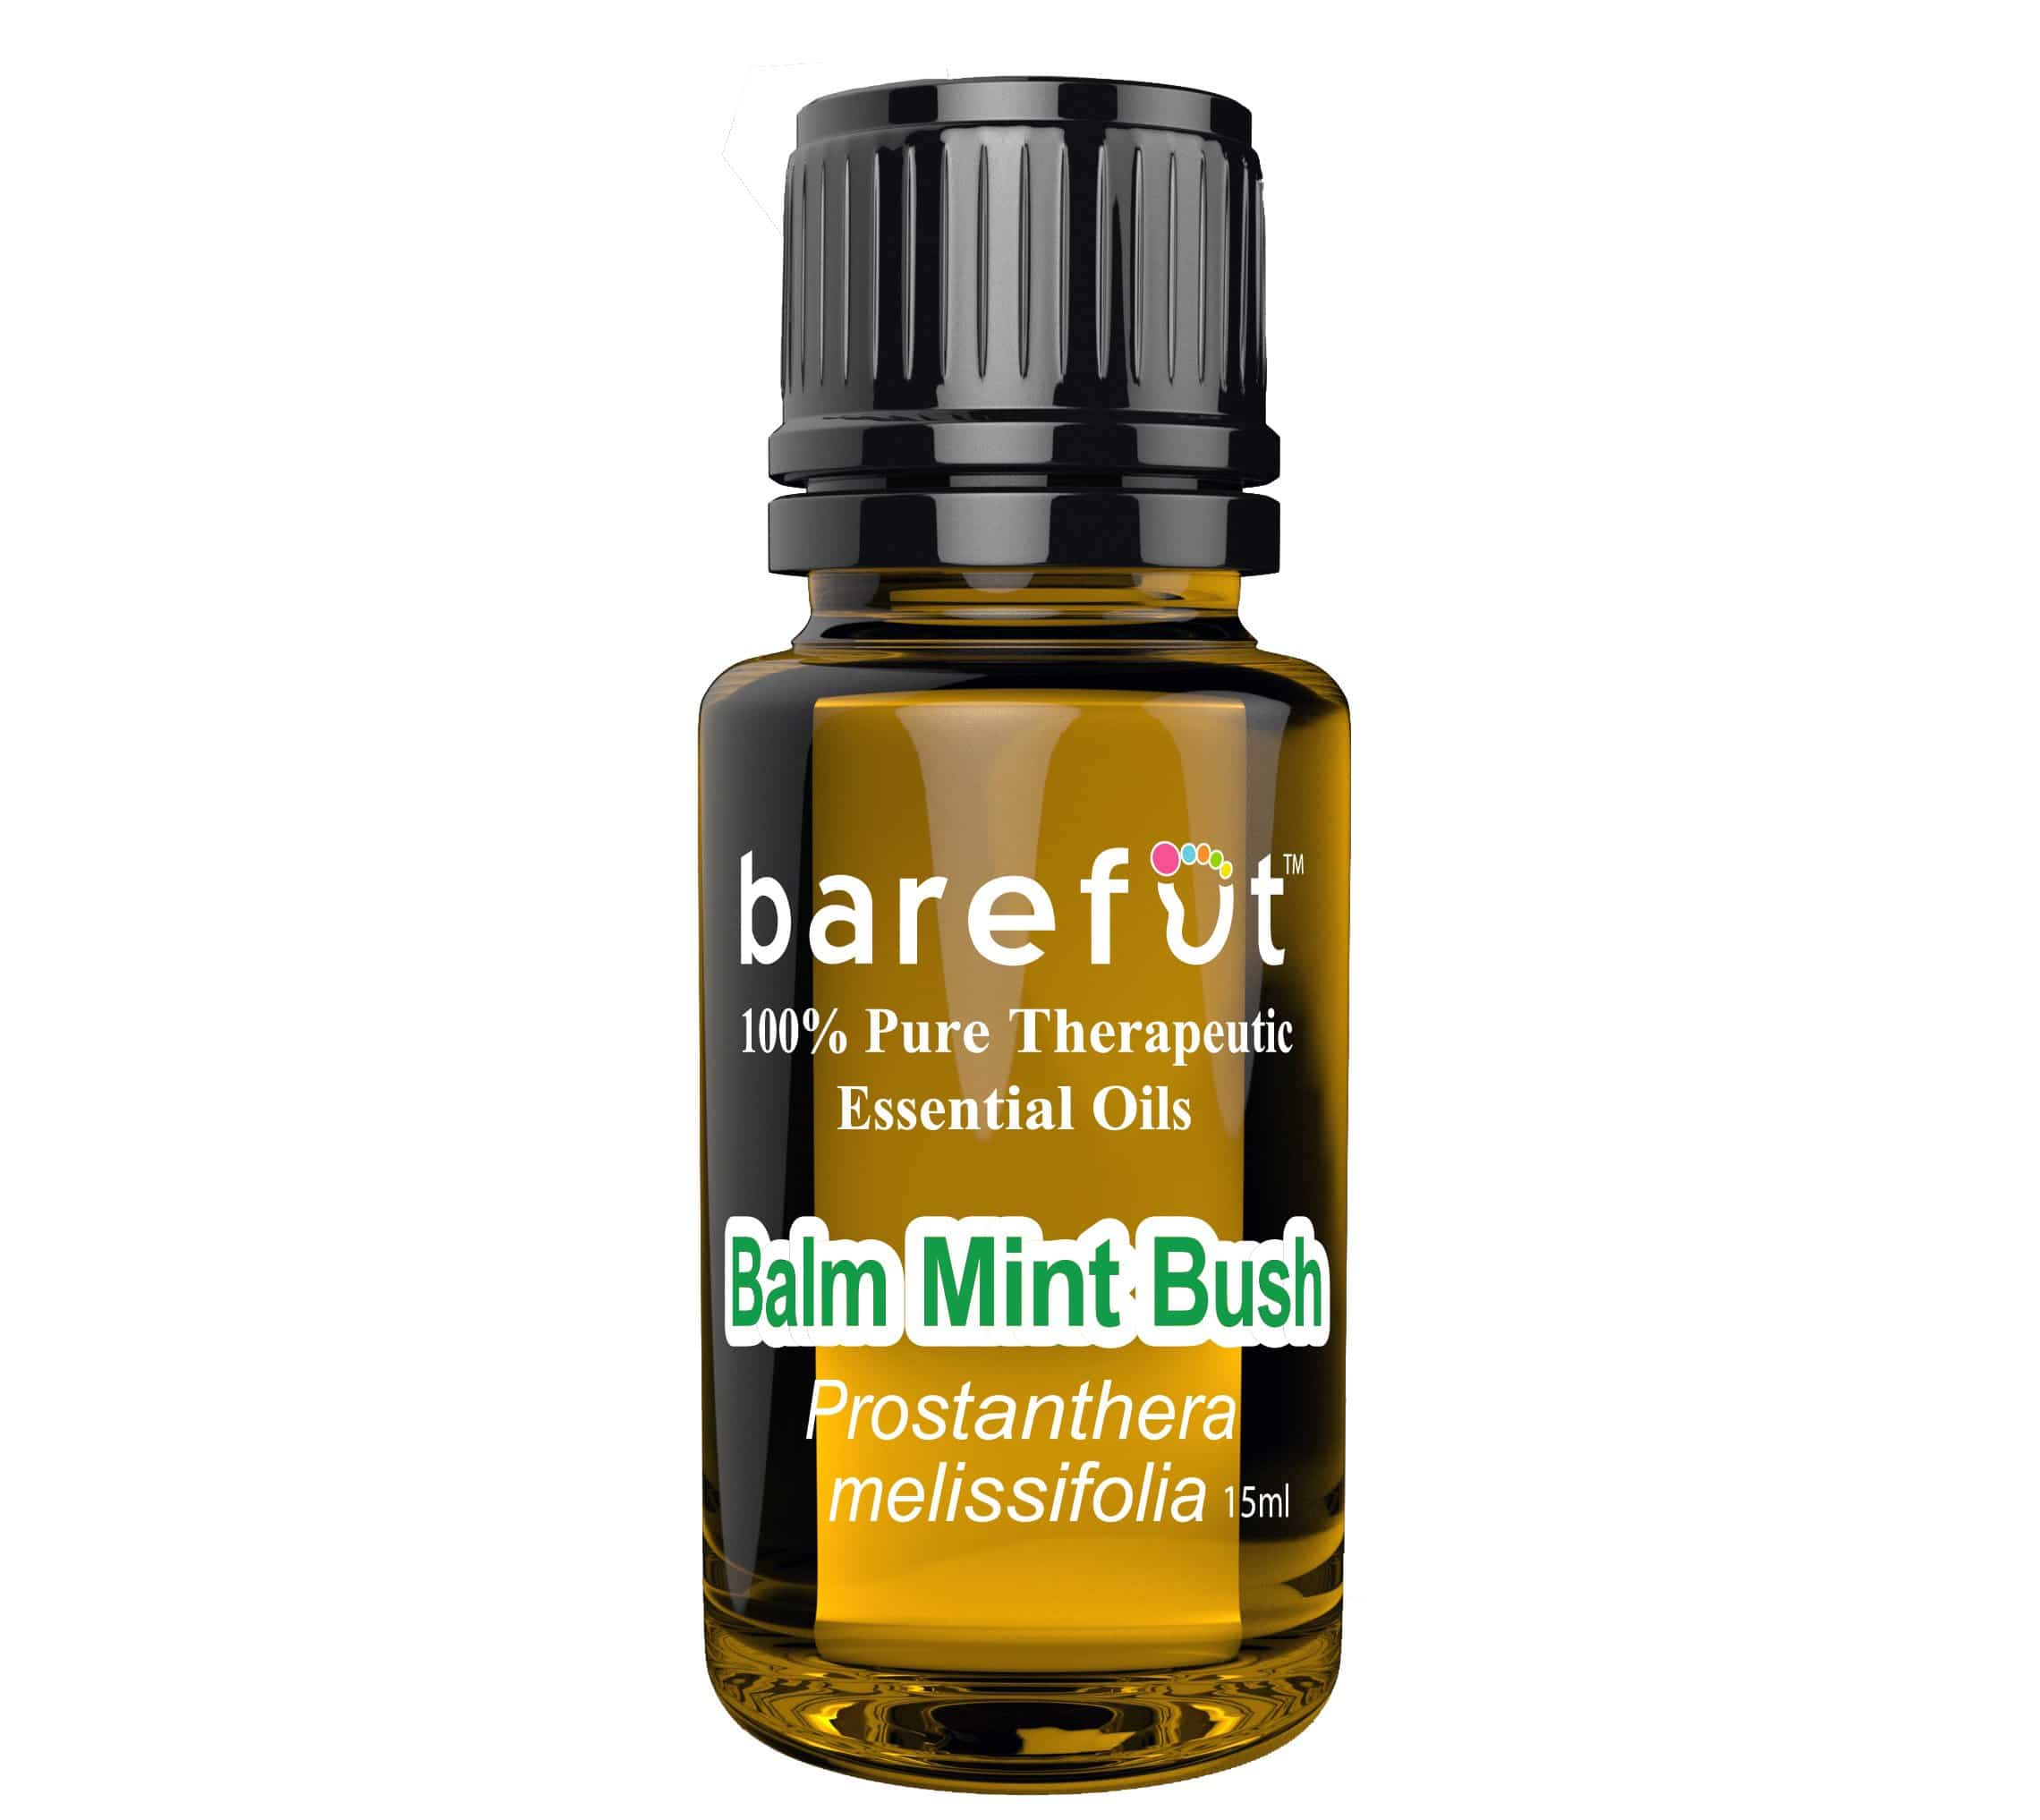 Balm Mint Bush Essential Oil Barefut